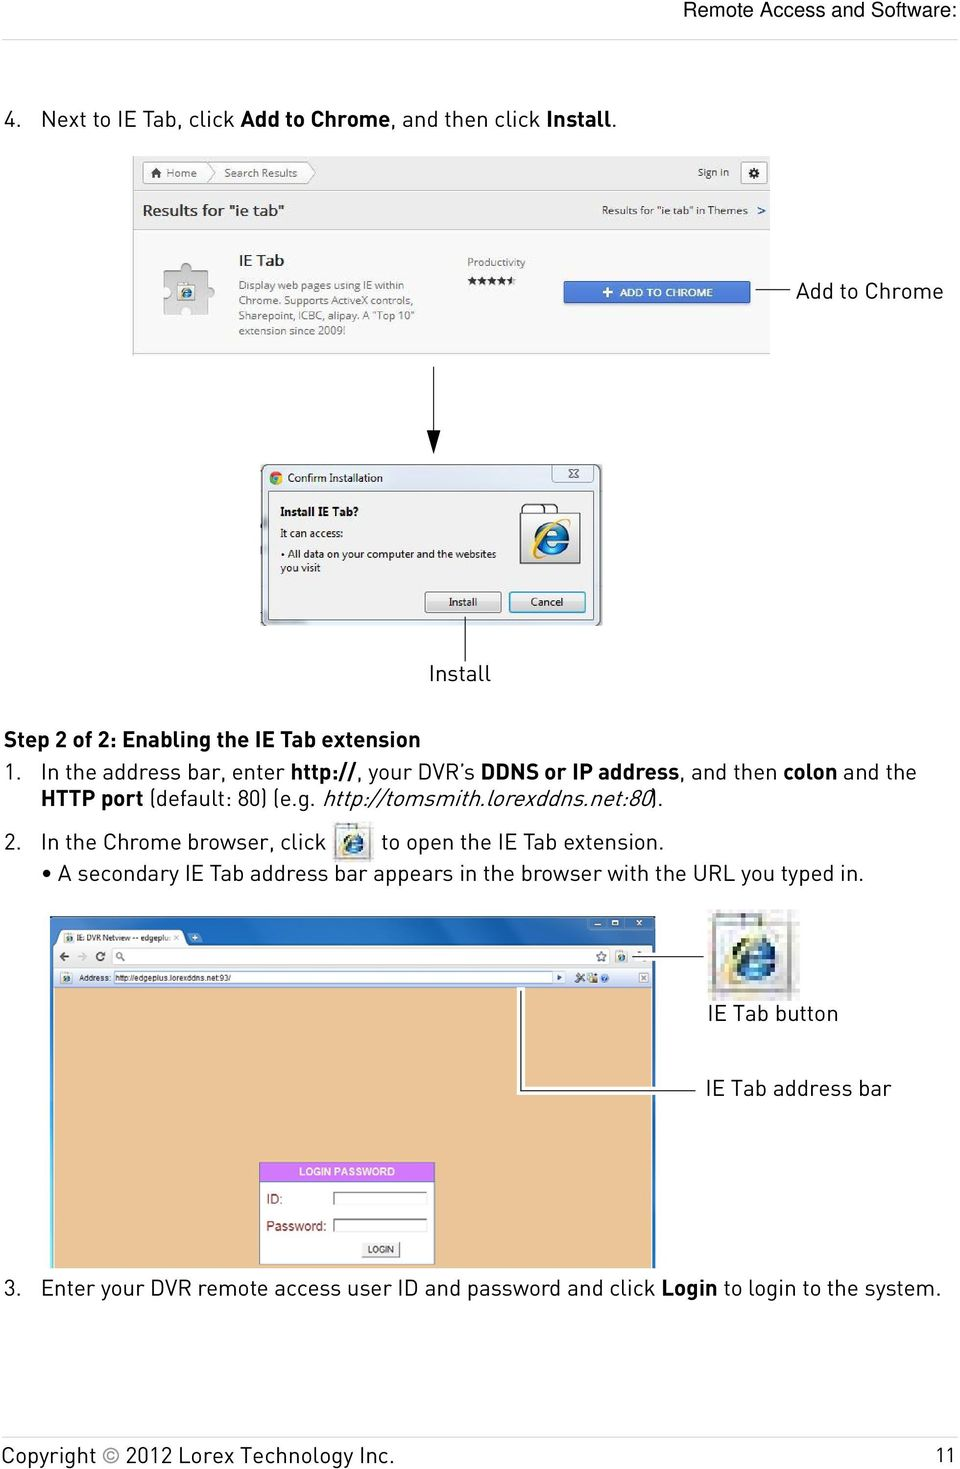 lorexddns.net:80). 2. In the Chrome browser, click to open the IE Tab extension.